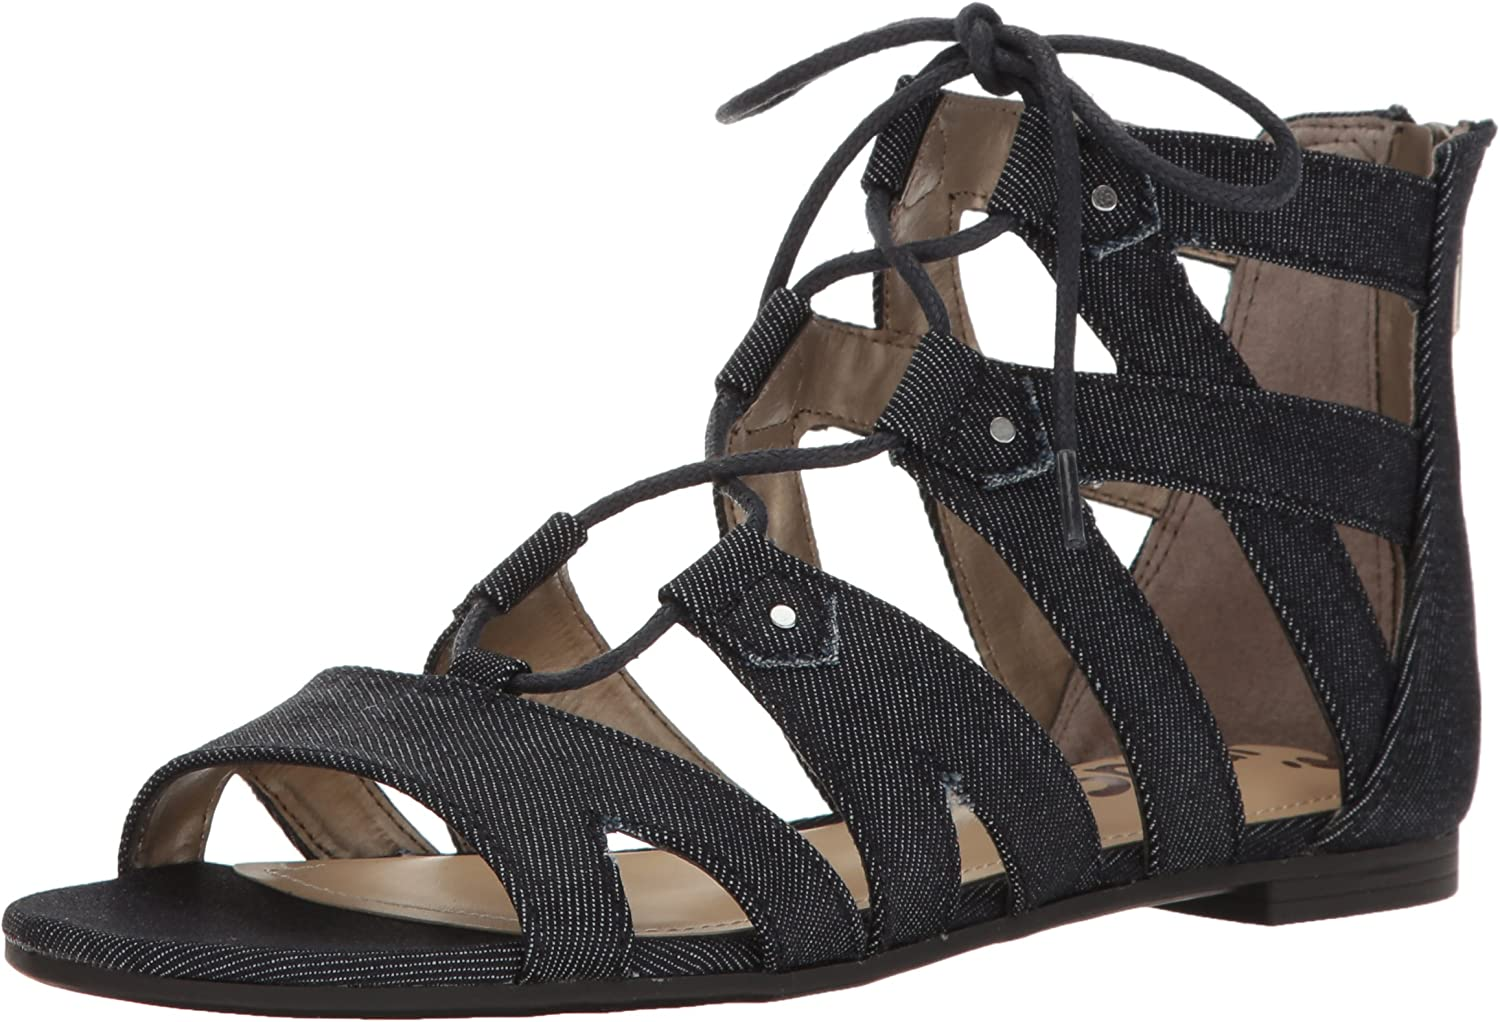 Circus by Sam Edelman Women's Hagan Fashion Sandals